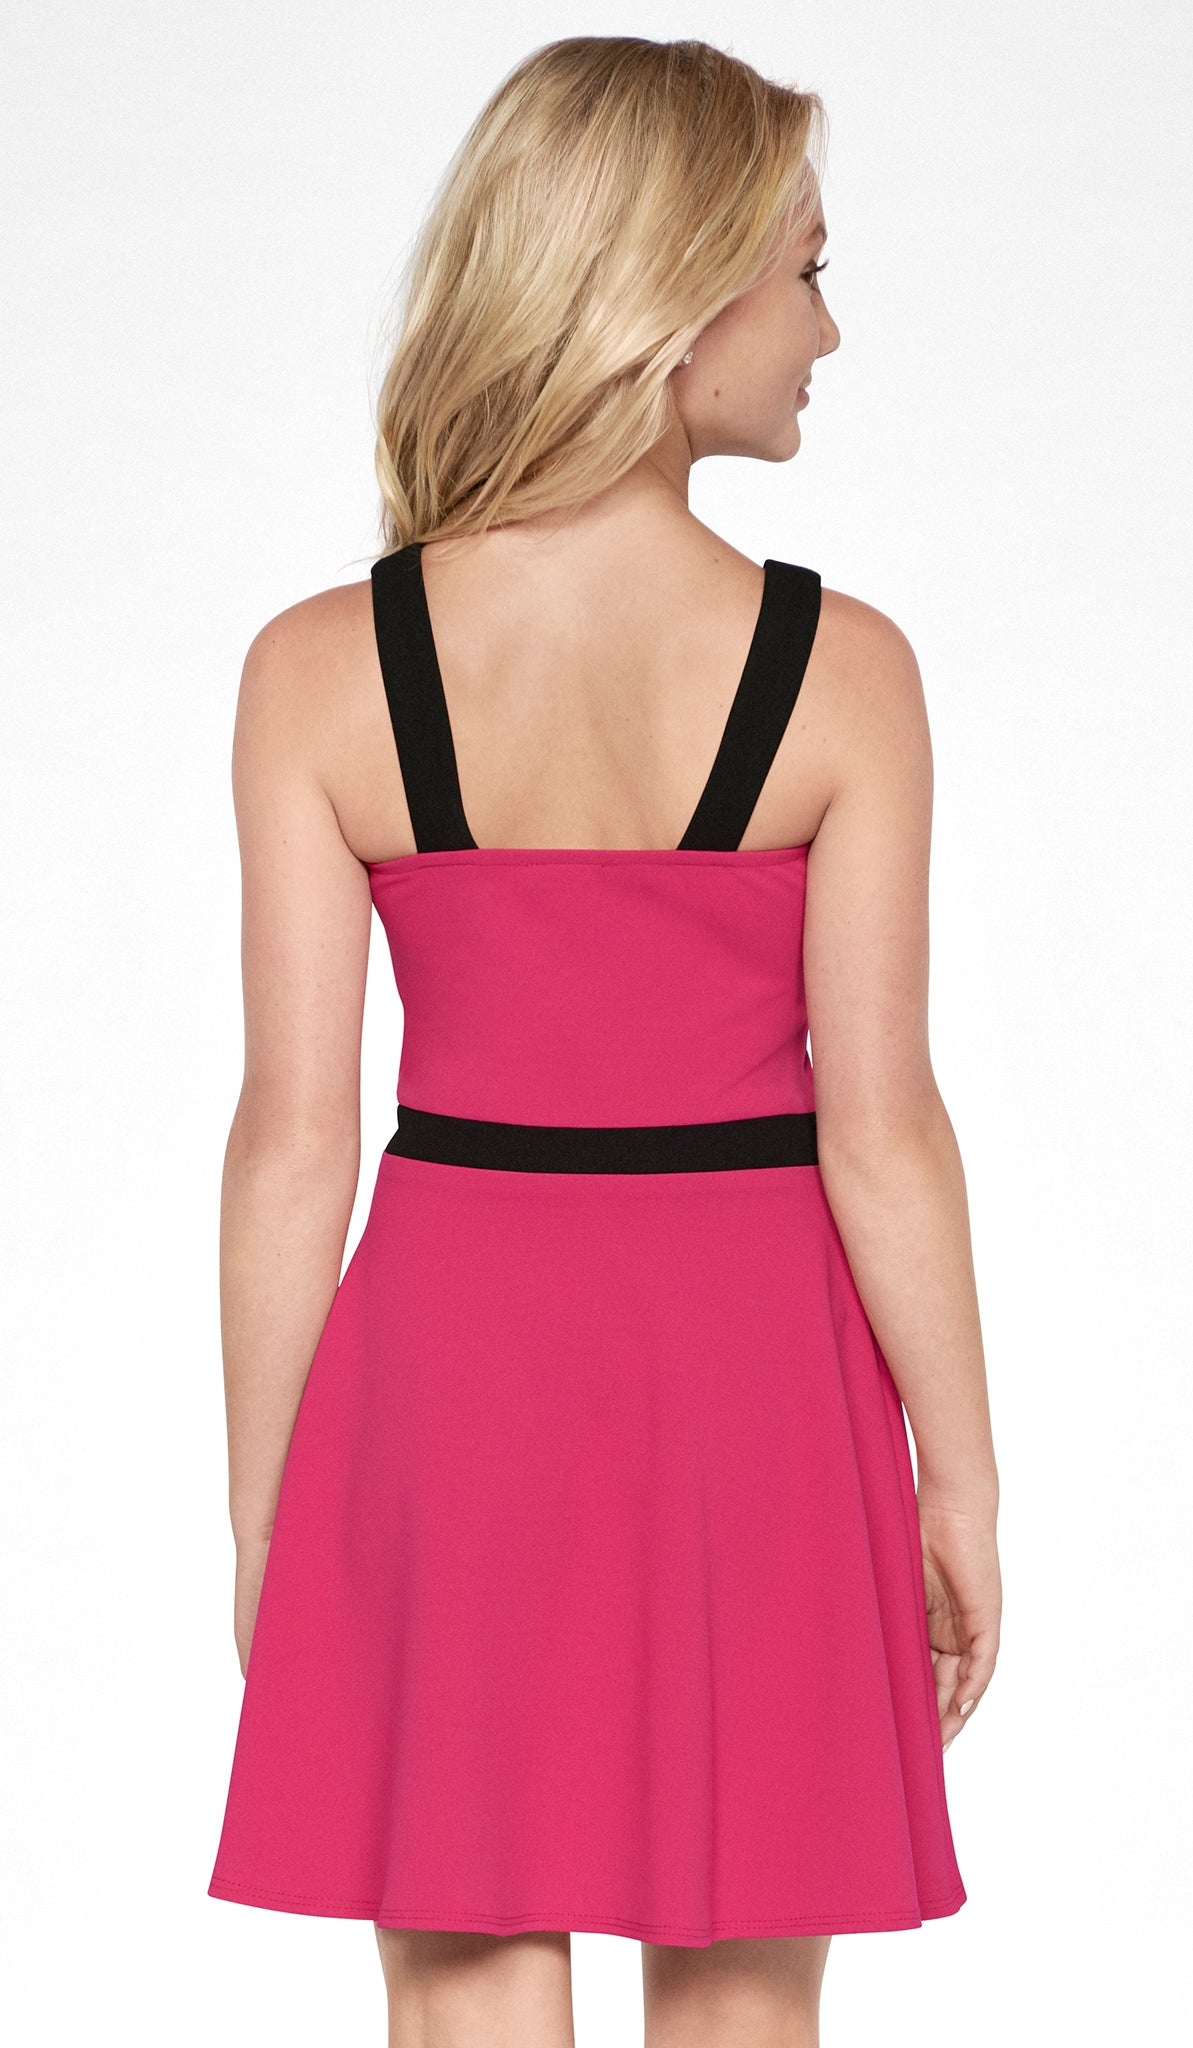 Sally Miller tween magenta fit and flare knit special occasion dress with black trim and mesh insert back view